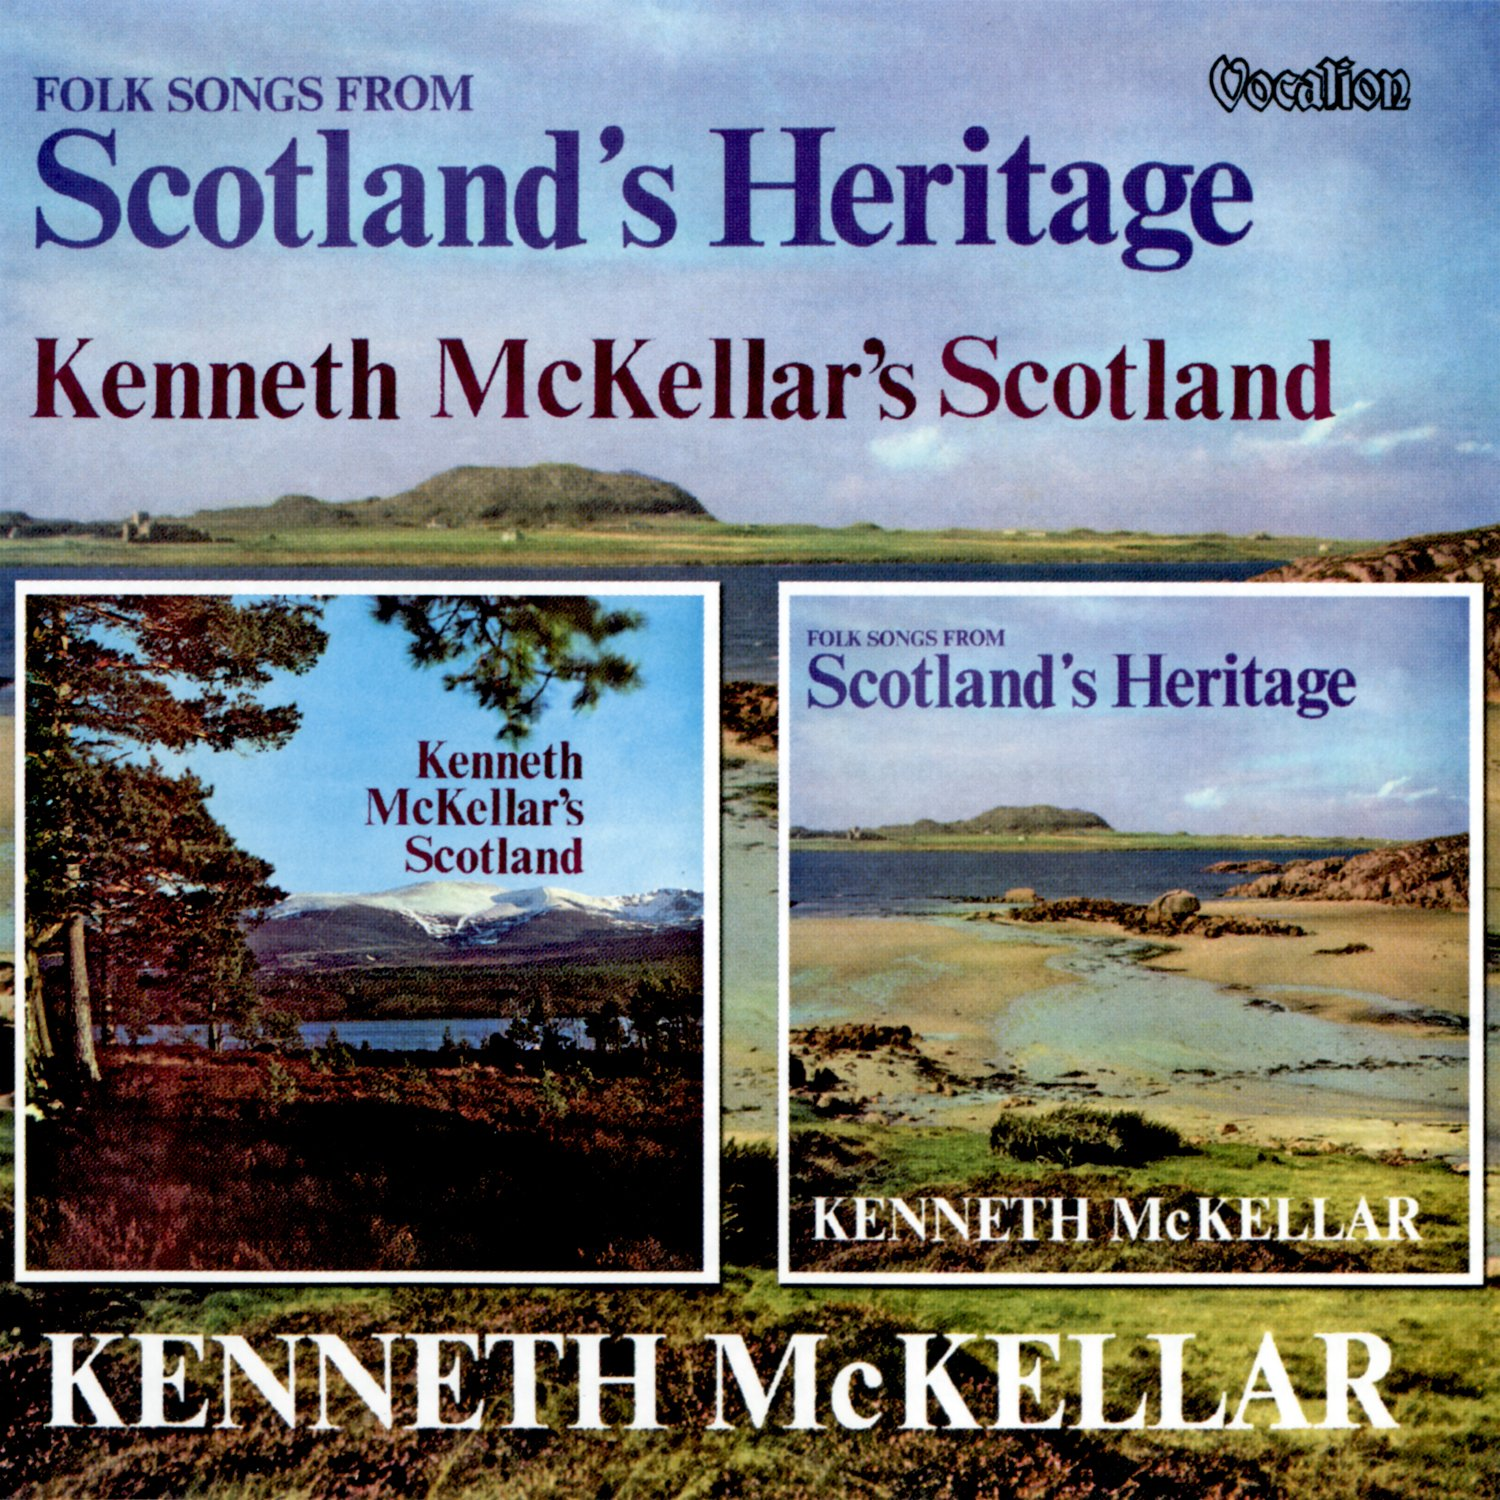 Folk Songs From Scotland's Heritage                                                                                                                                                                                                                                                                                                                                                                                                <span class=